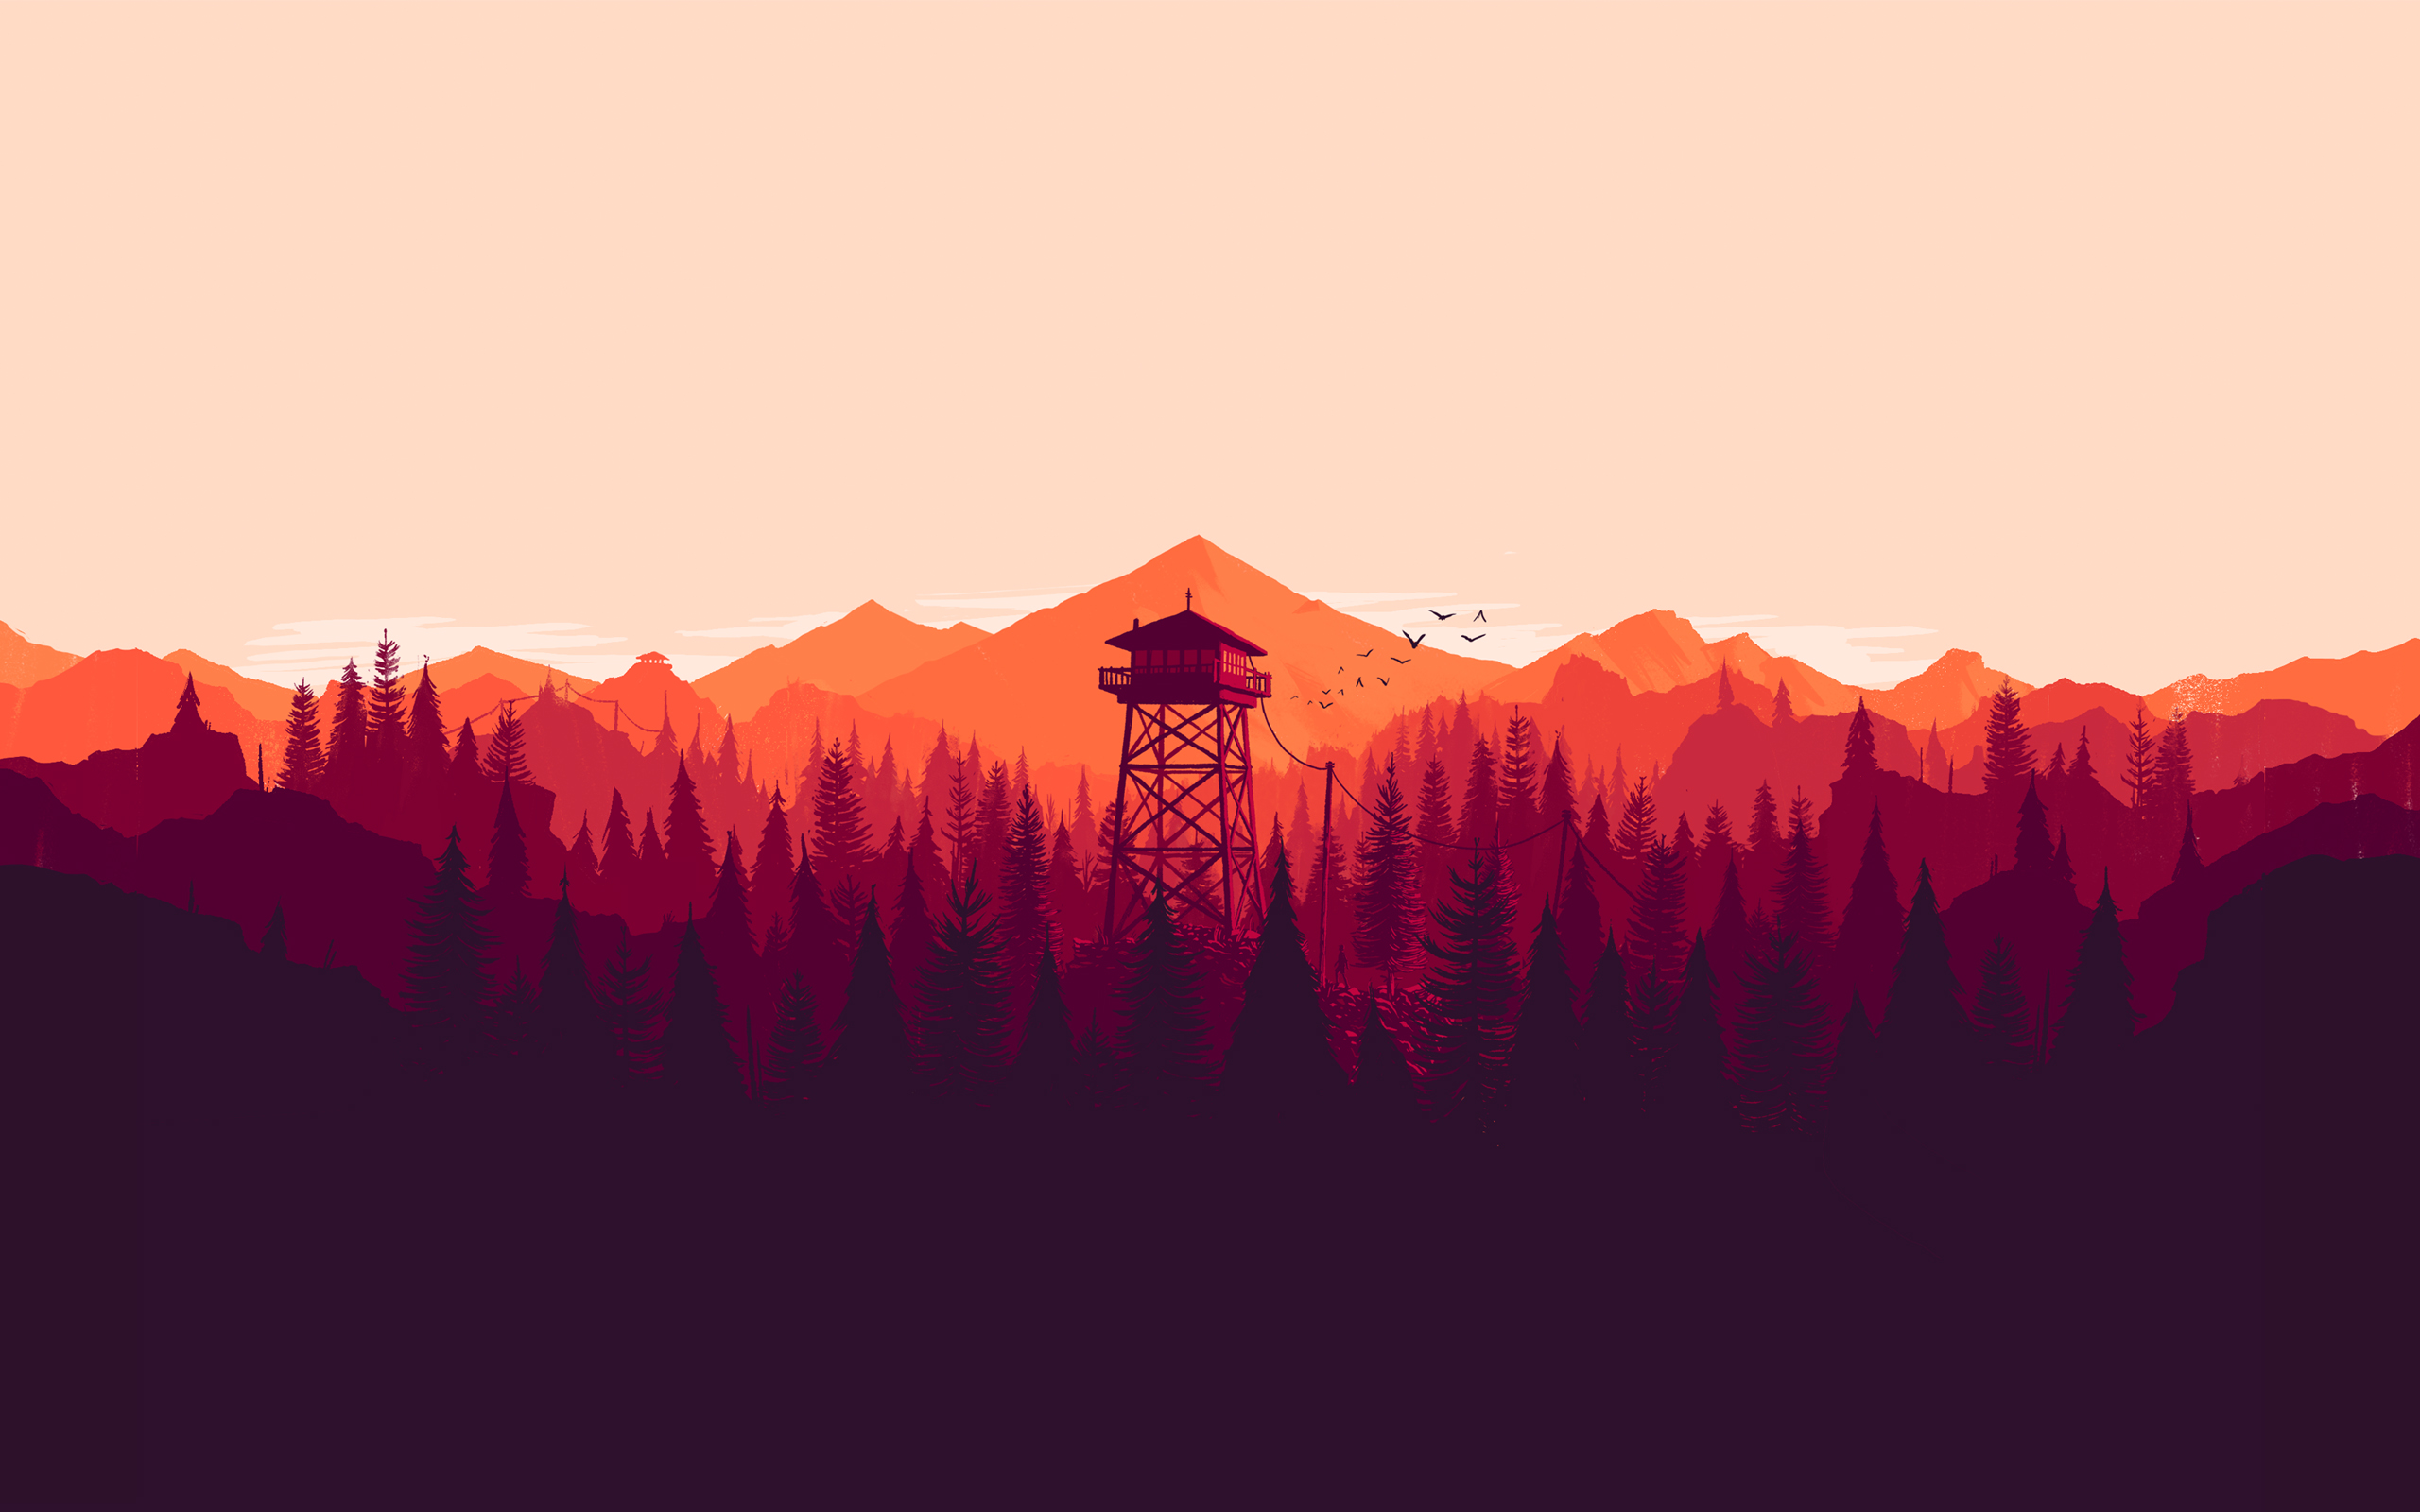 Simple Wallpapers in HQ Resolution, 46, SHunVMall com